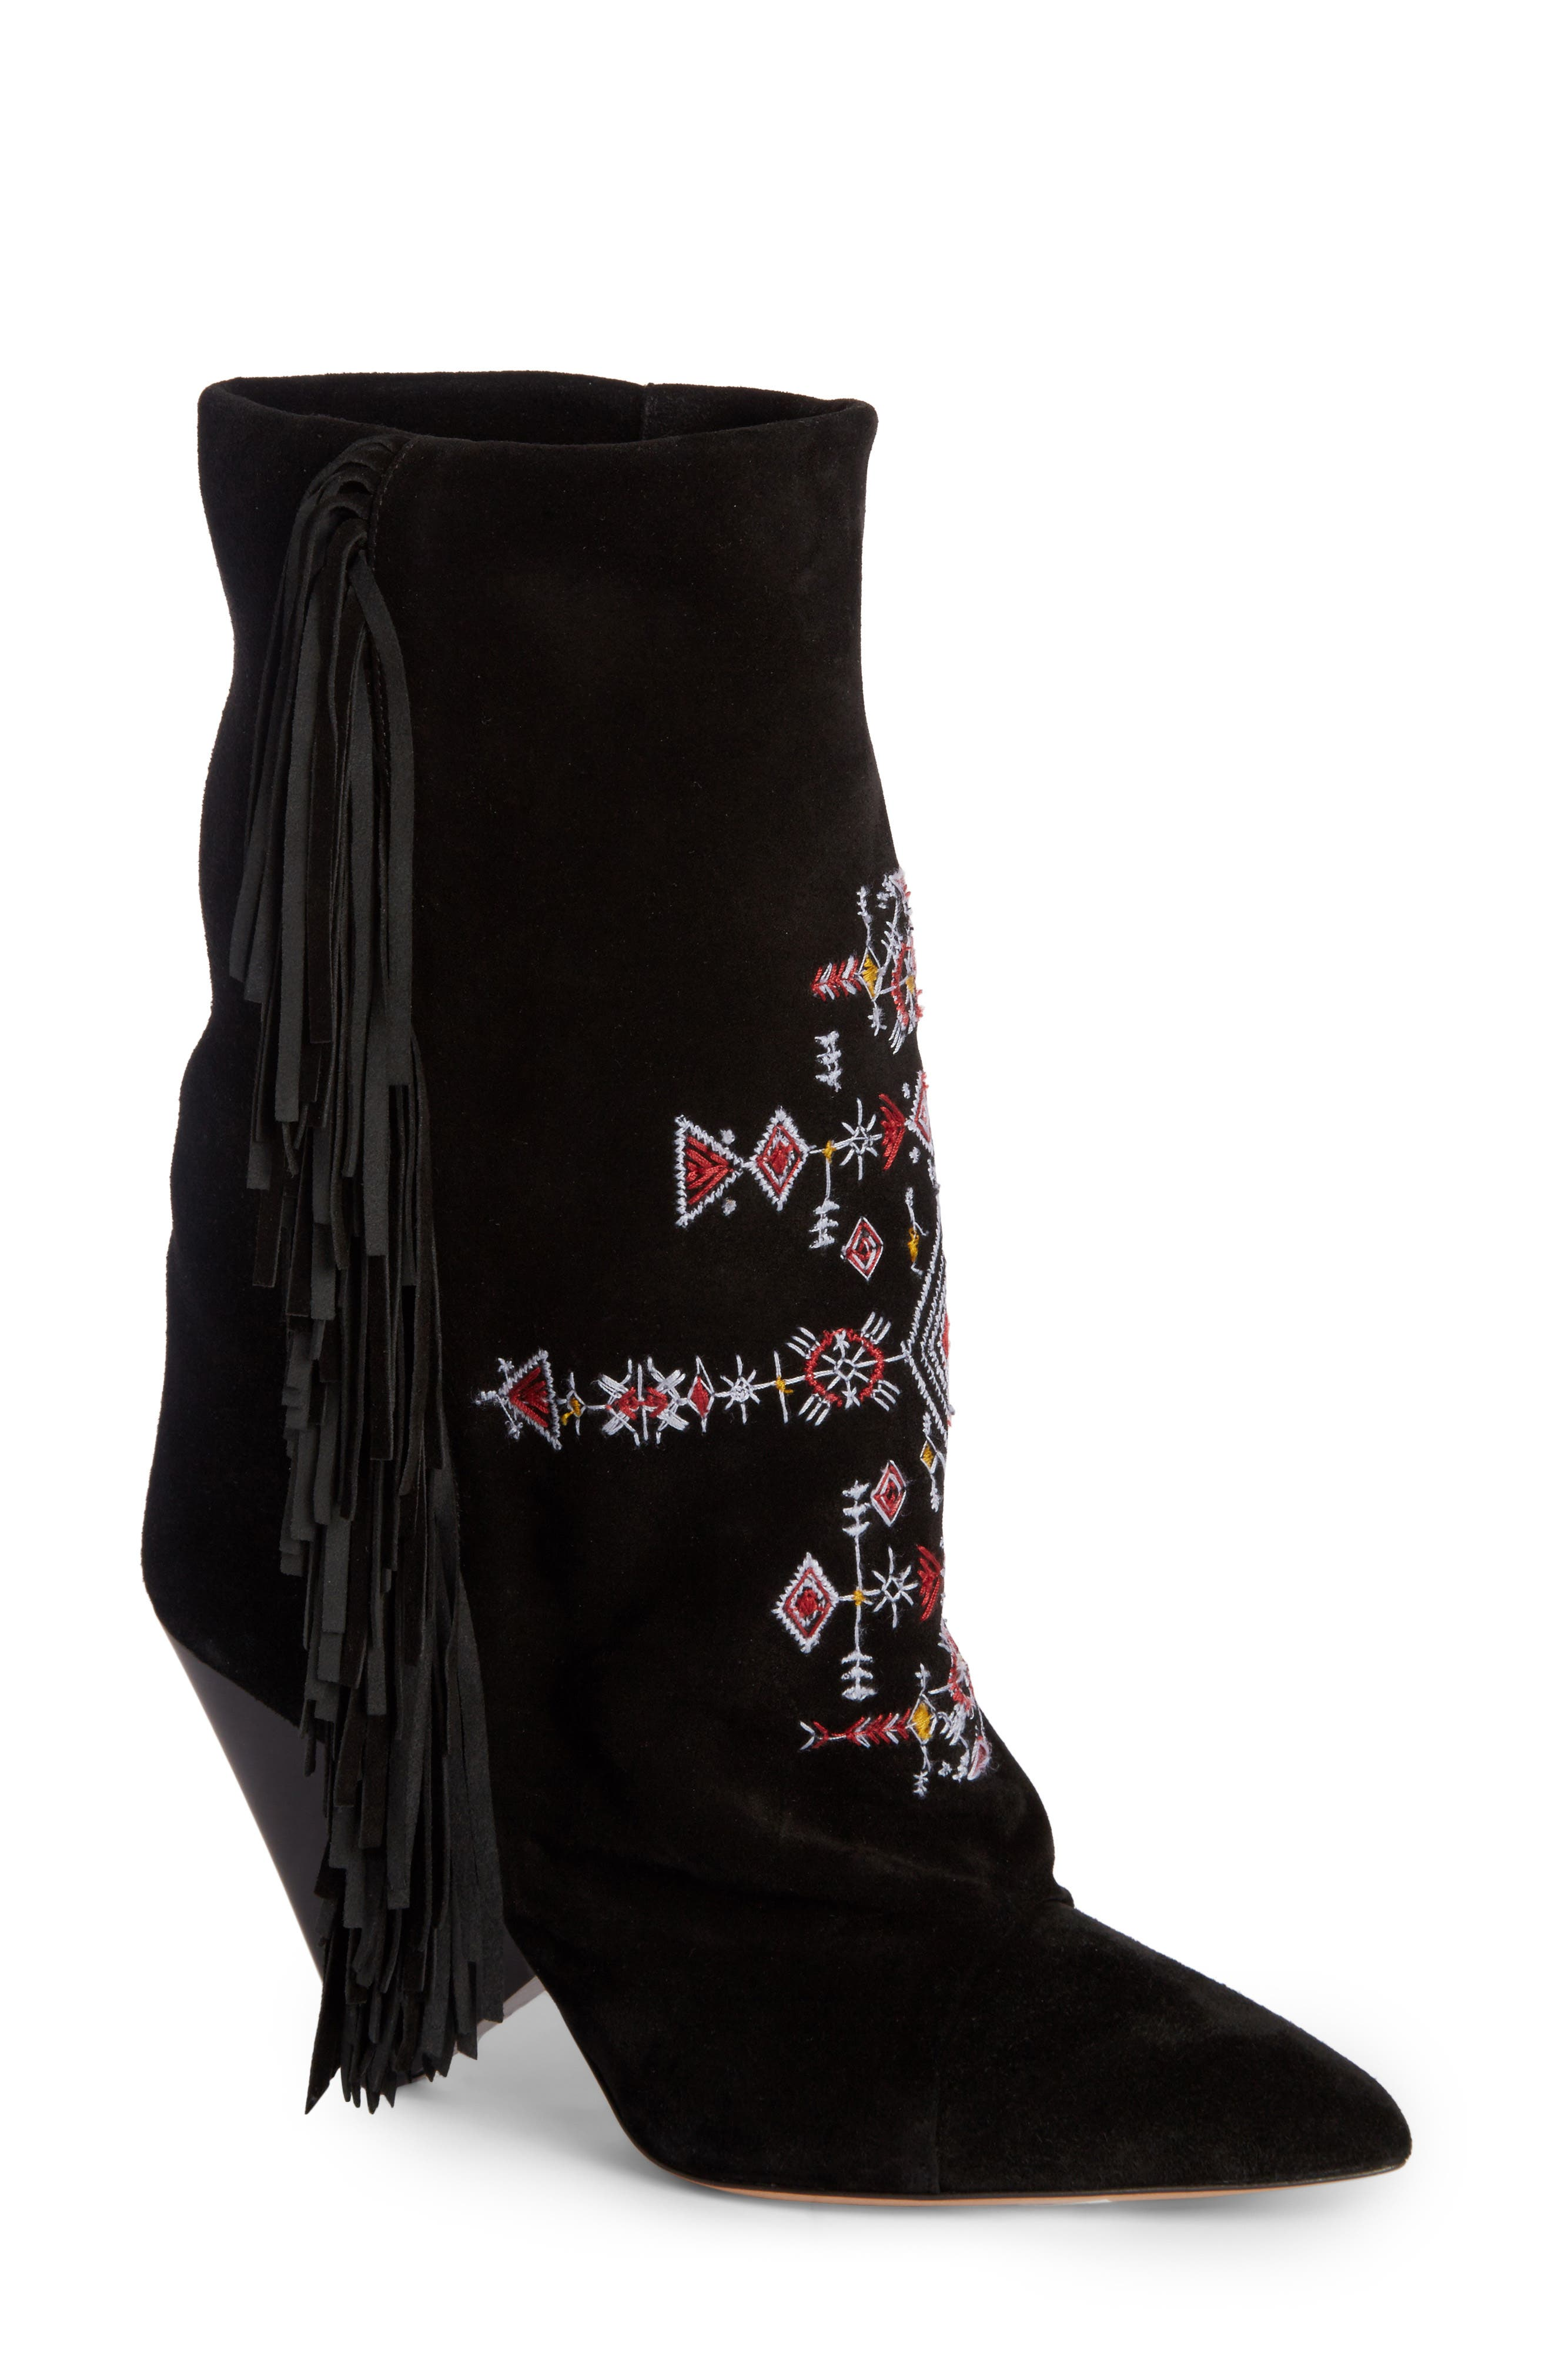 Lesten Embroidered Fringe Boot,                             Main thumbnail 1, color,                             001